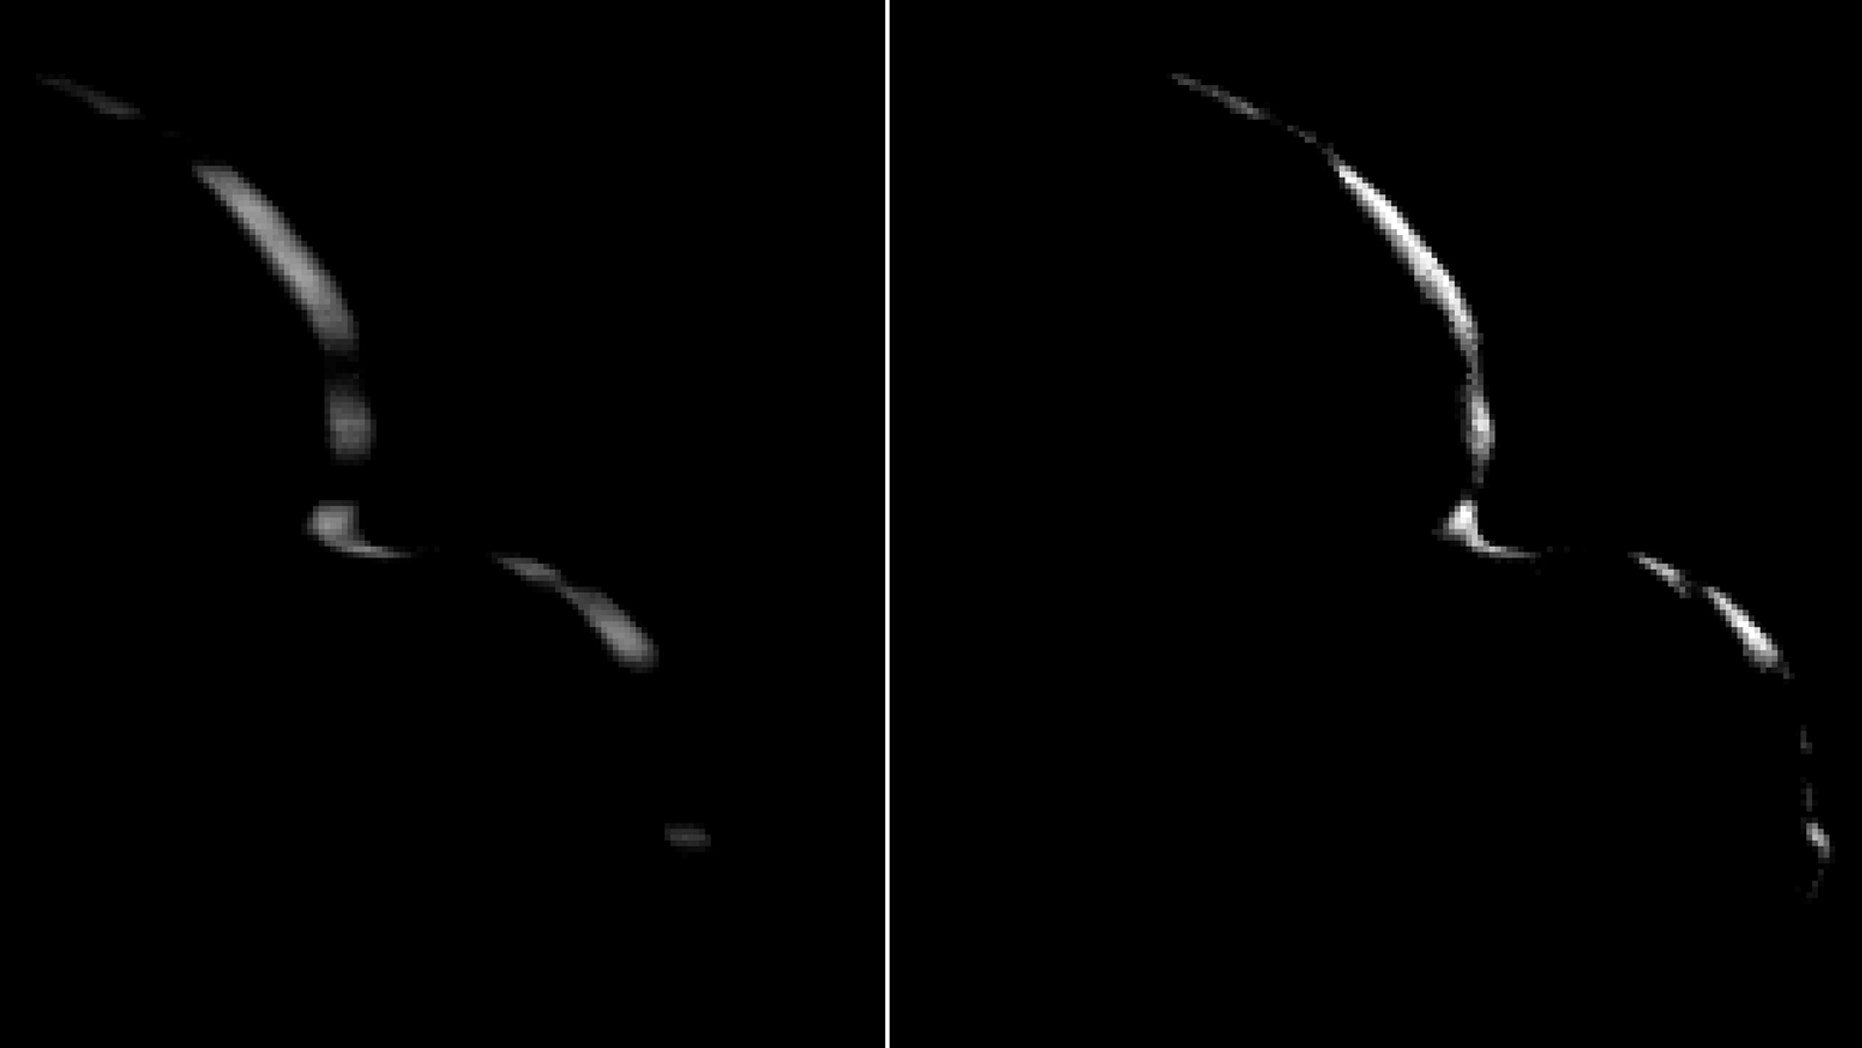 Ultima Thule is more pancake than snowman, NASA scientists discover